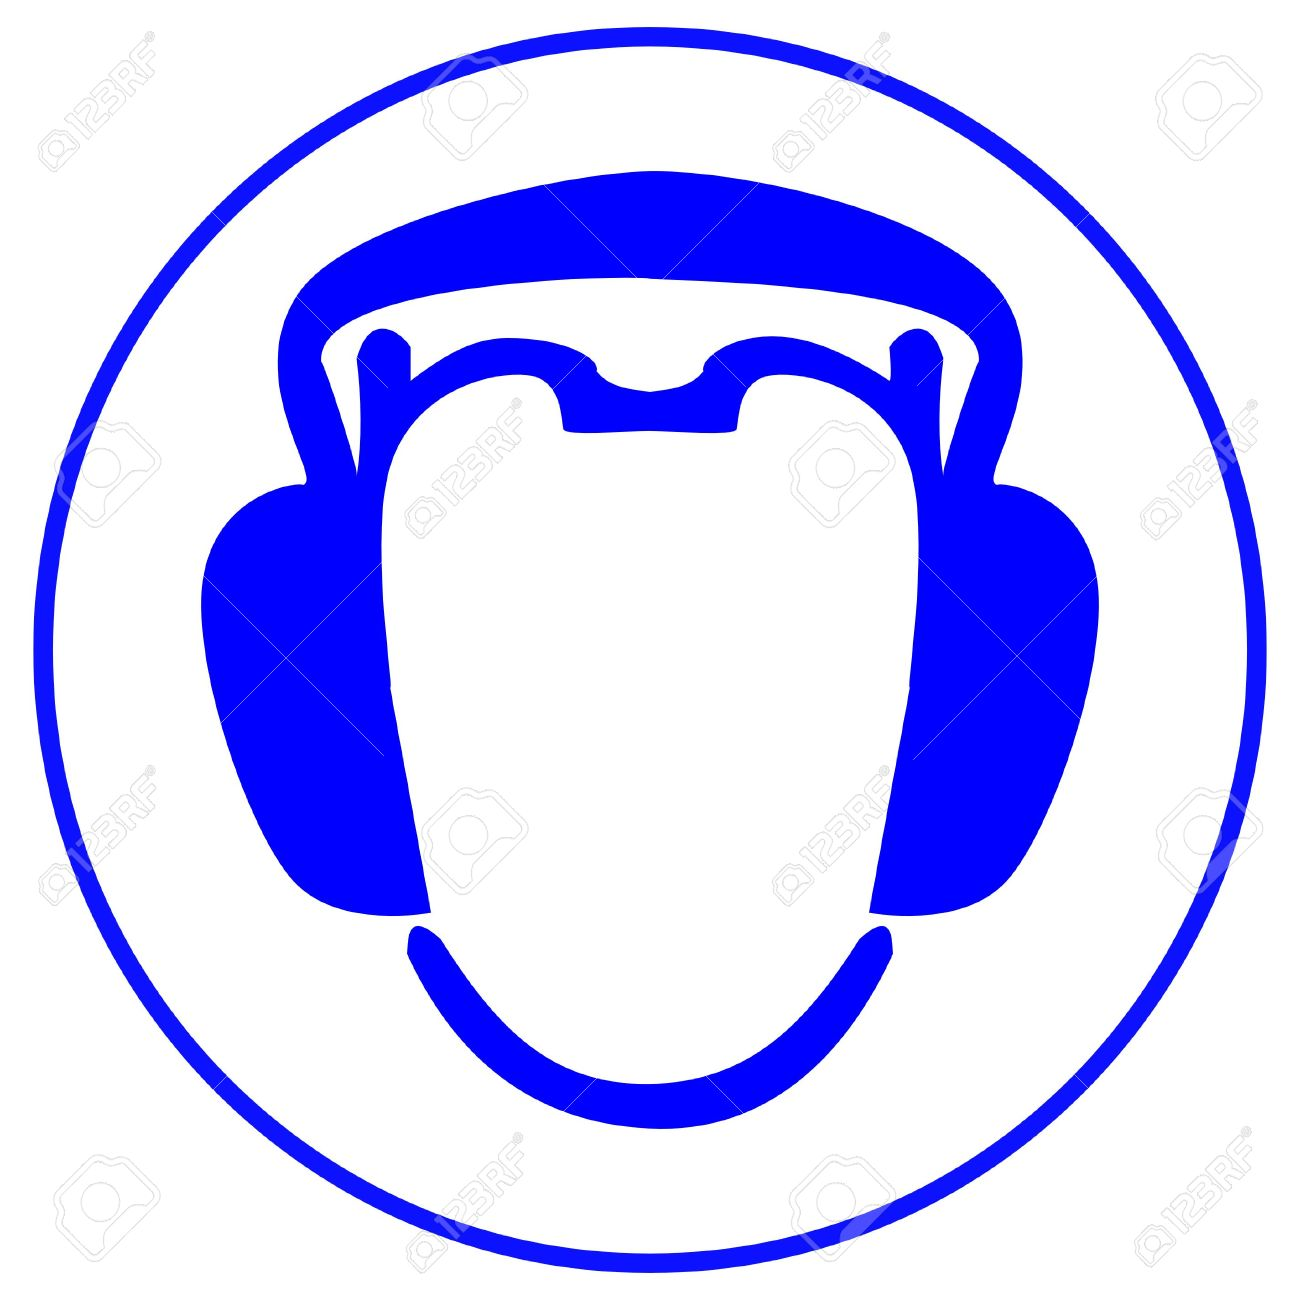 Wear Earmuffs Or Ear Plugs Royalty Free Cliparts, Vectors, And.